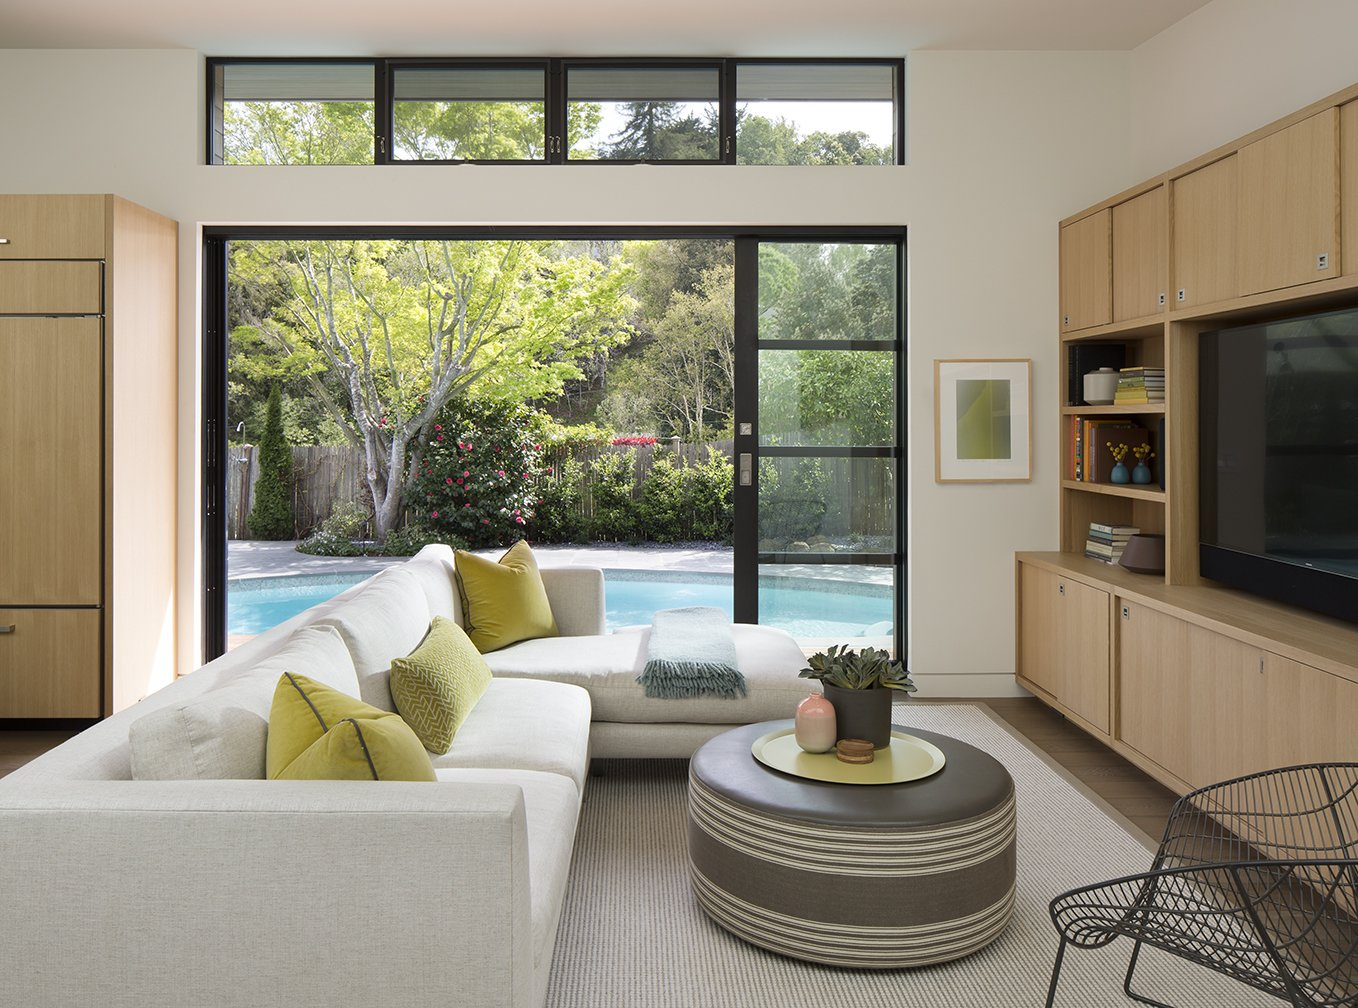 Sliding glass doors connect this renovated home in Marin County to a rear terrace and kidney-shaped pool.  Photo 2 of 5 in A New Spin on the Suburbs in Marin